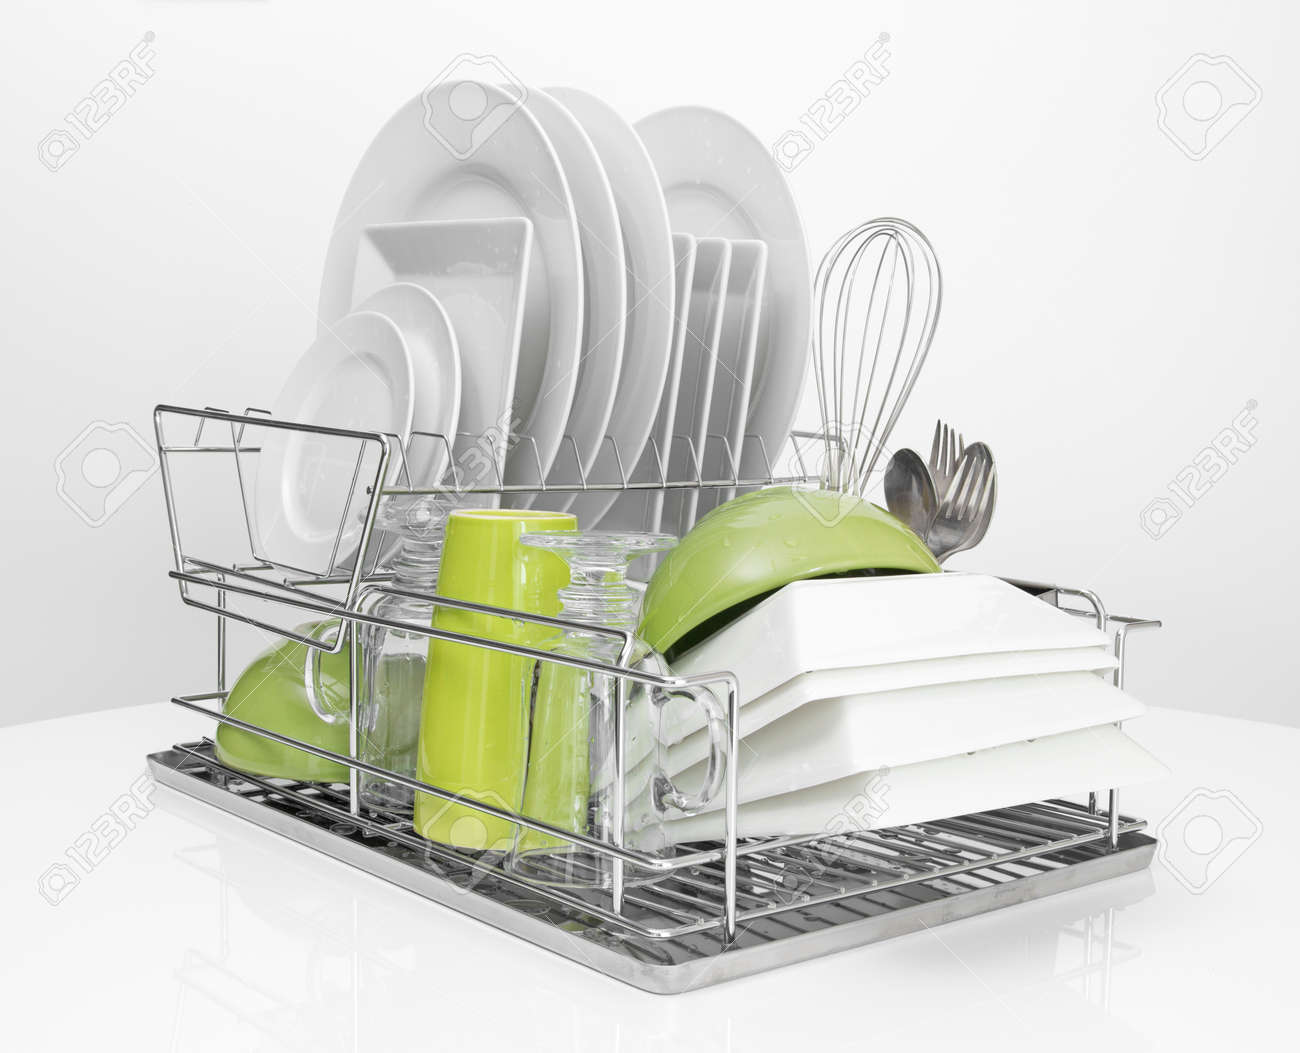 kitchen drying rack outdoor equipment bright dishes on a metal dish white background stock photo 16674106